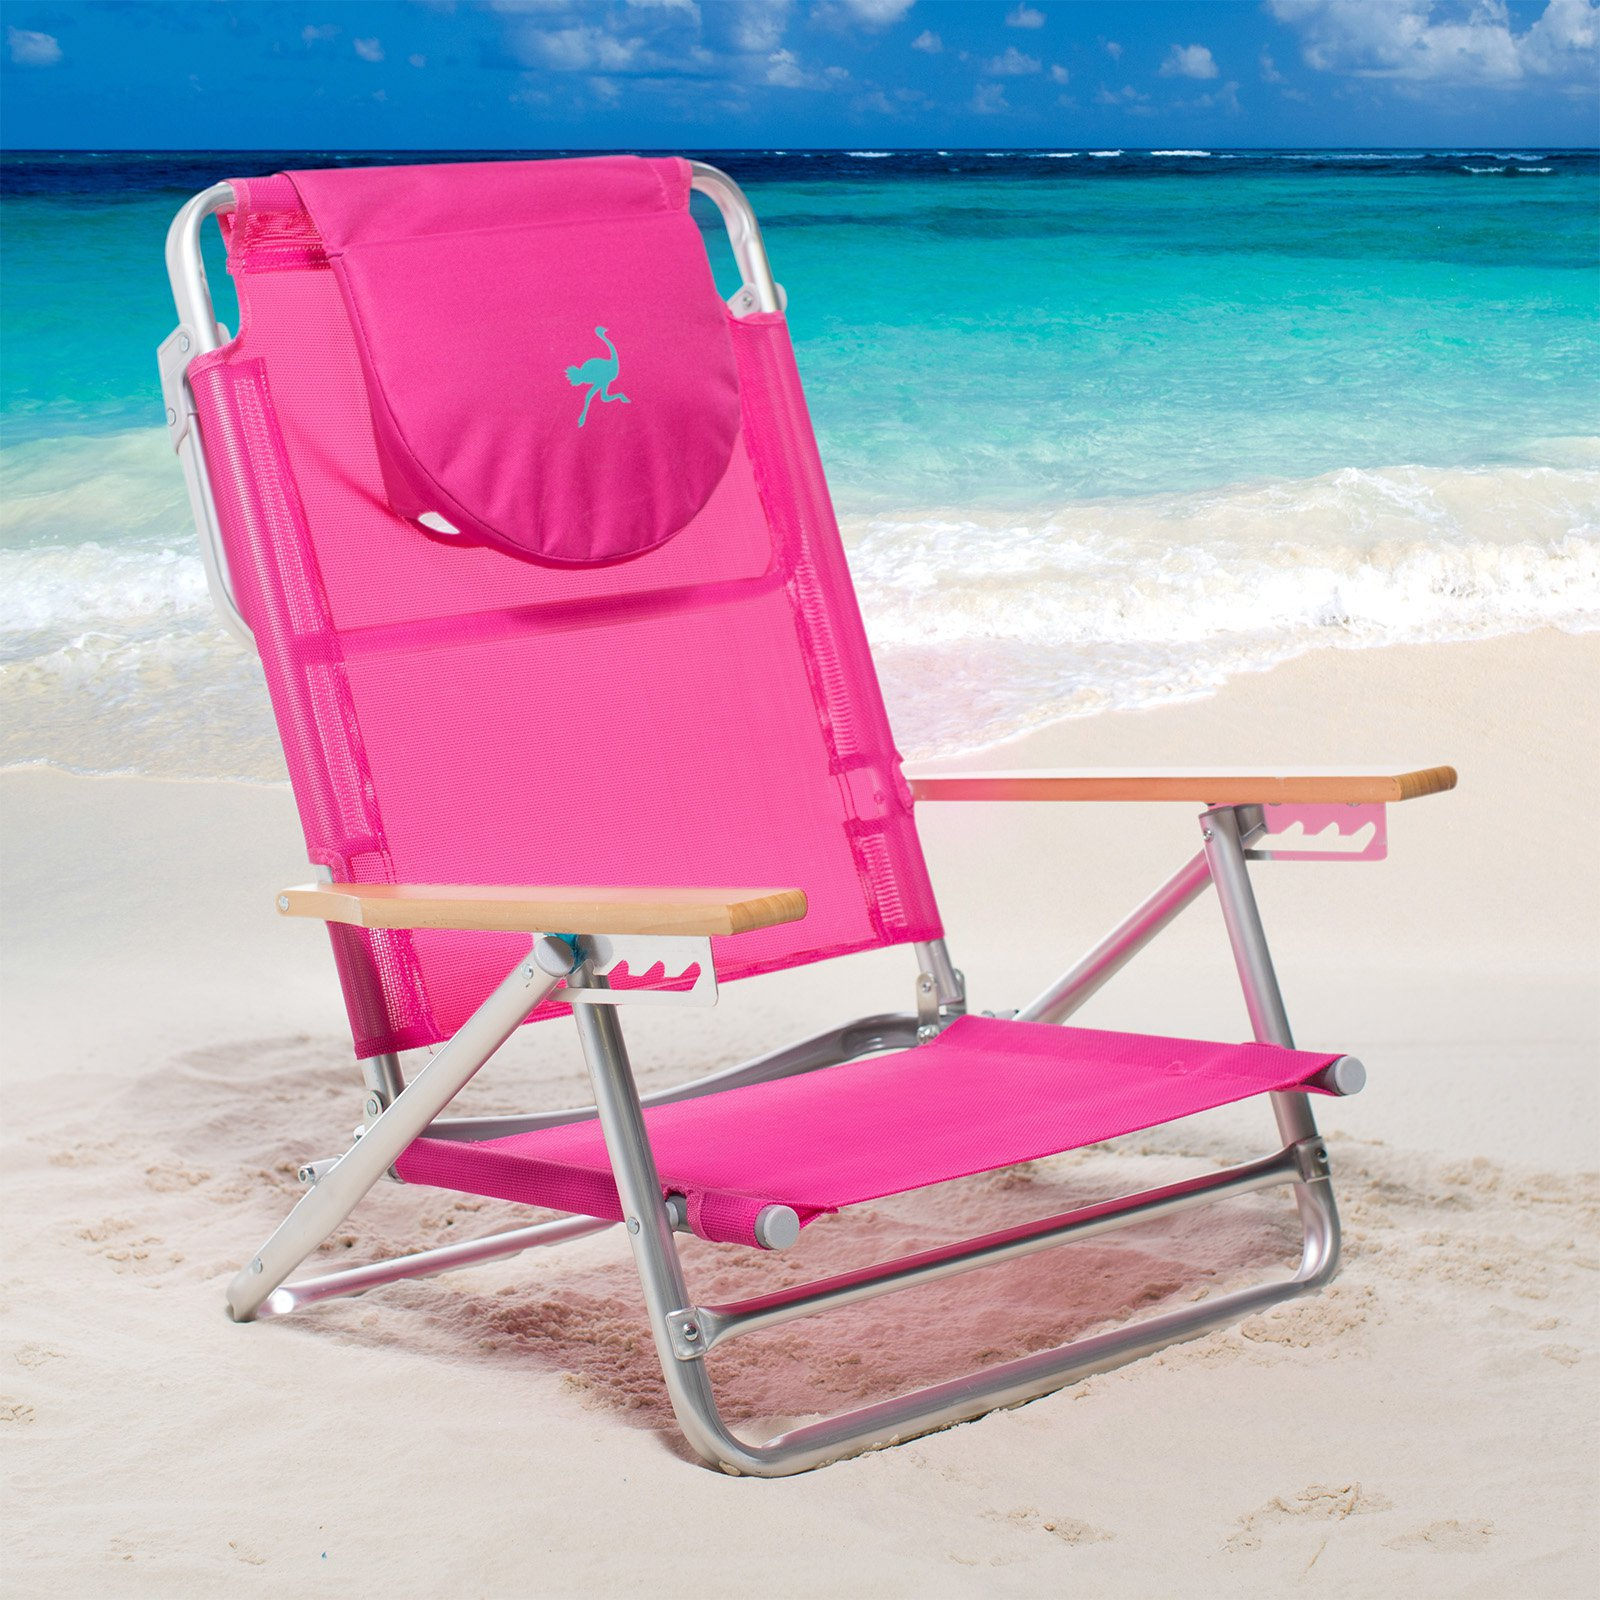 pink beach chair parsons chairs set of 2 walmart com product image ostrich south 5 position sand